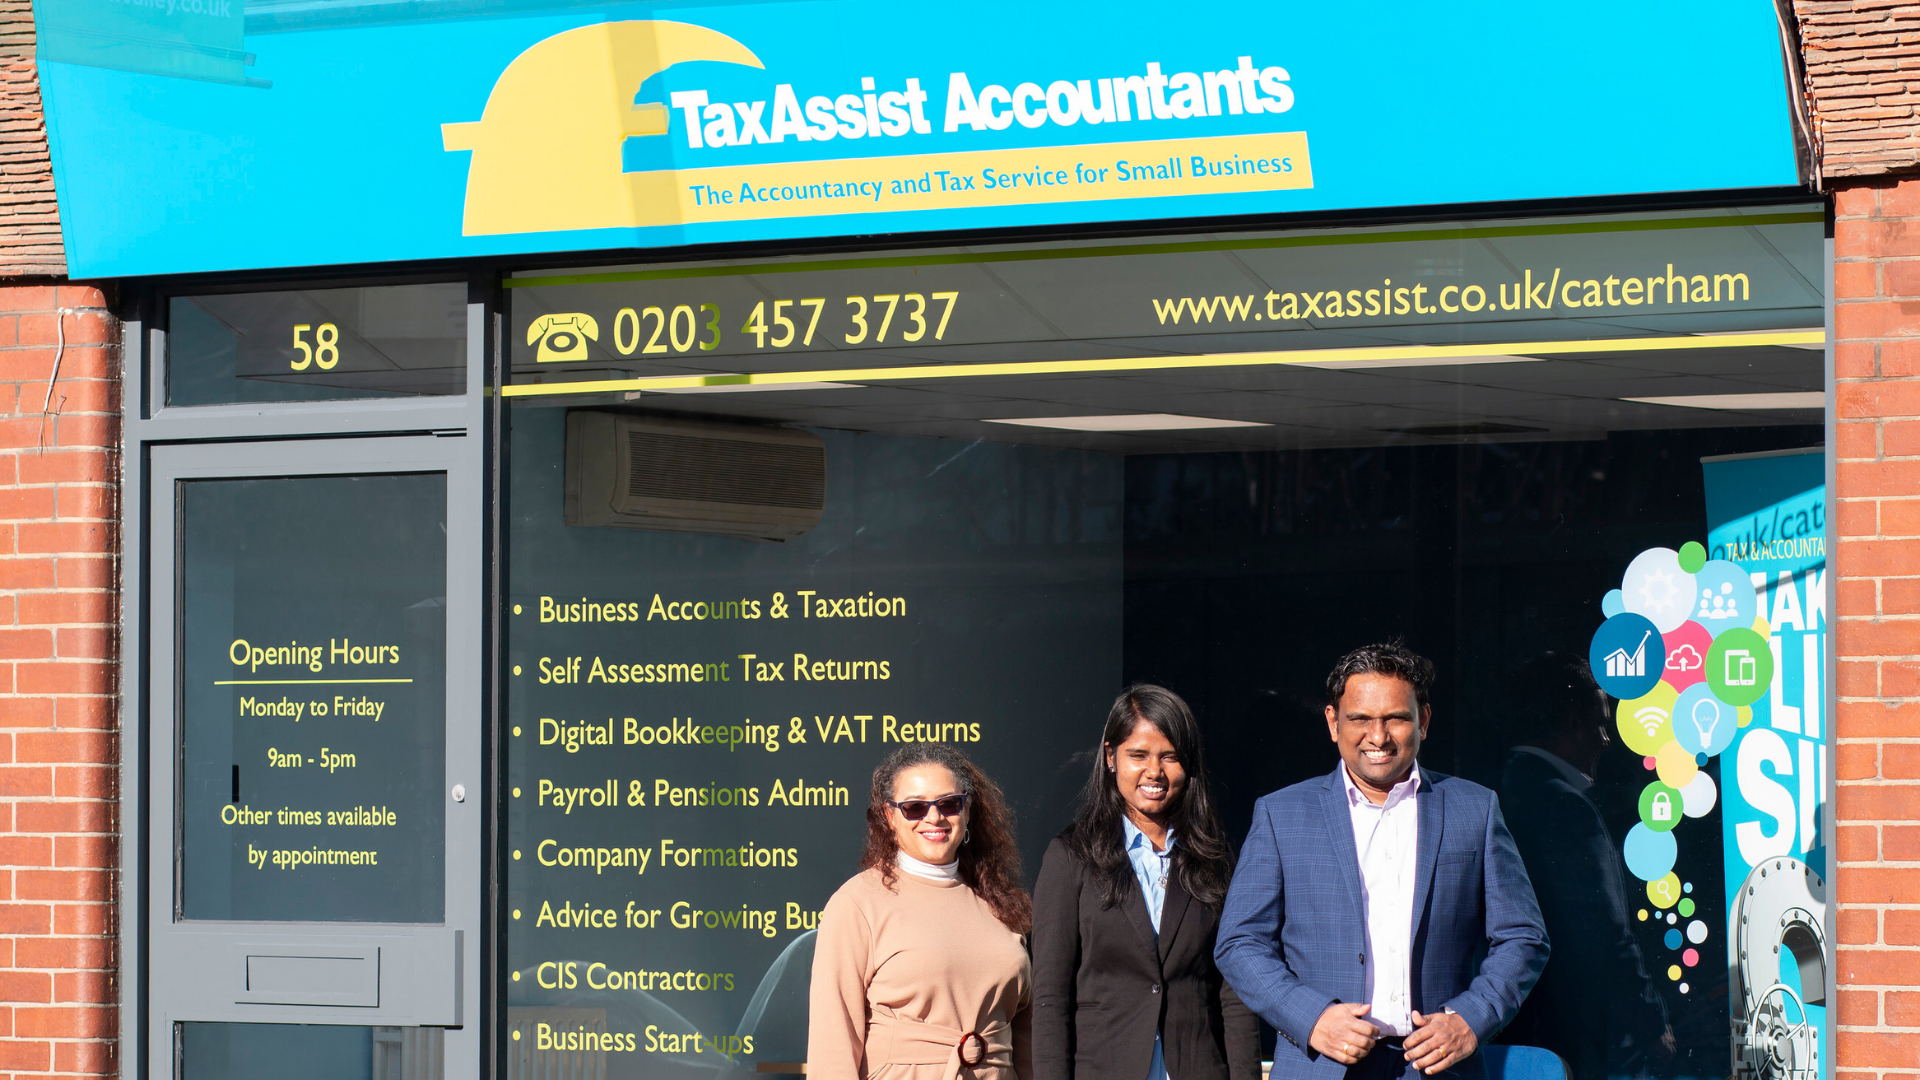 New TaxAssist Accountants shop opens in Caterham